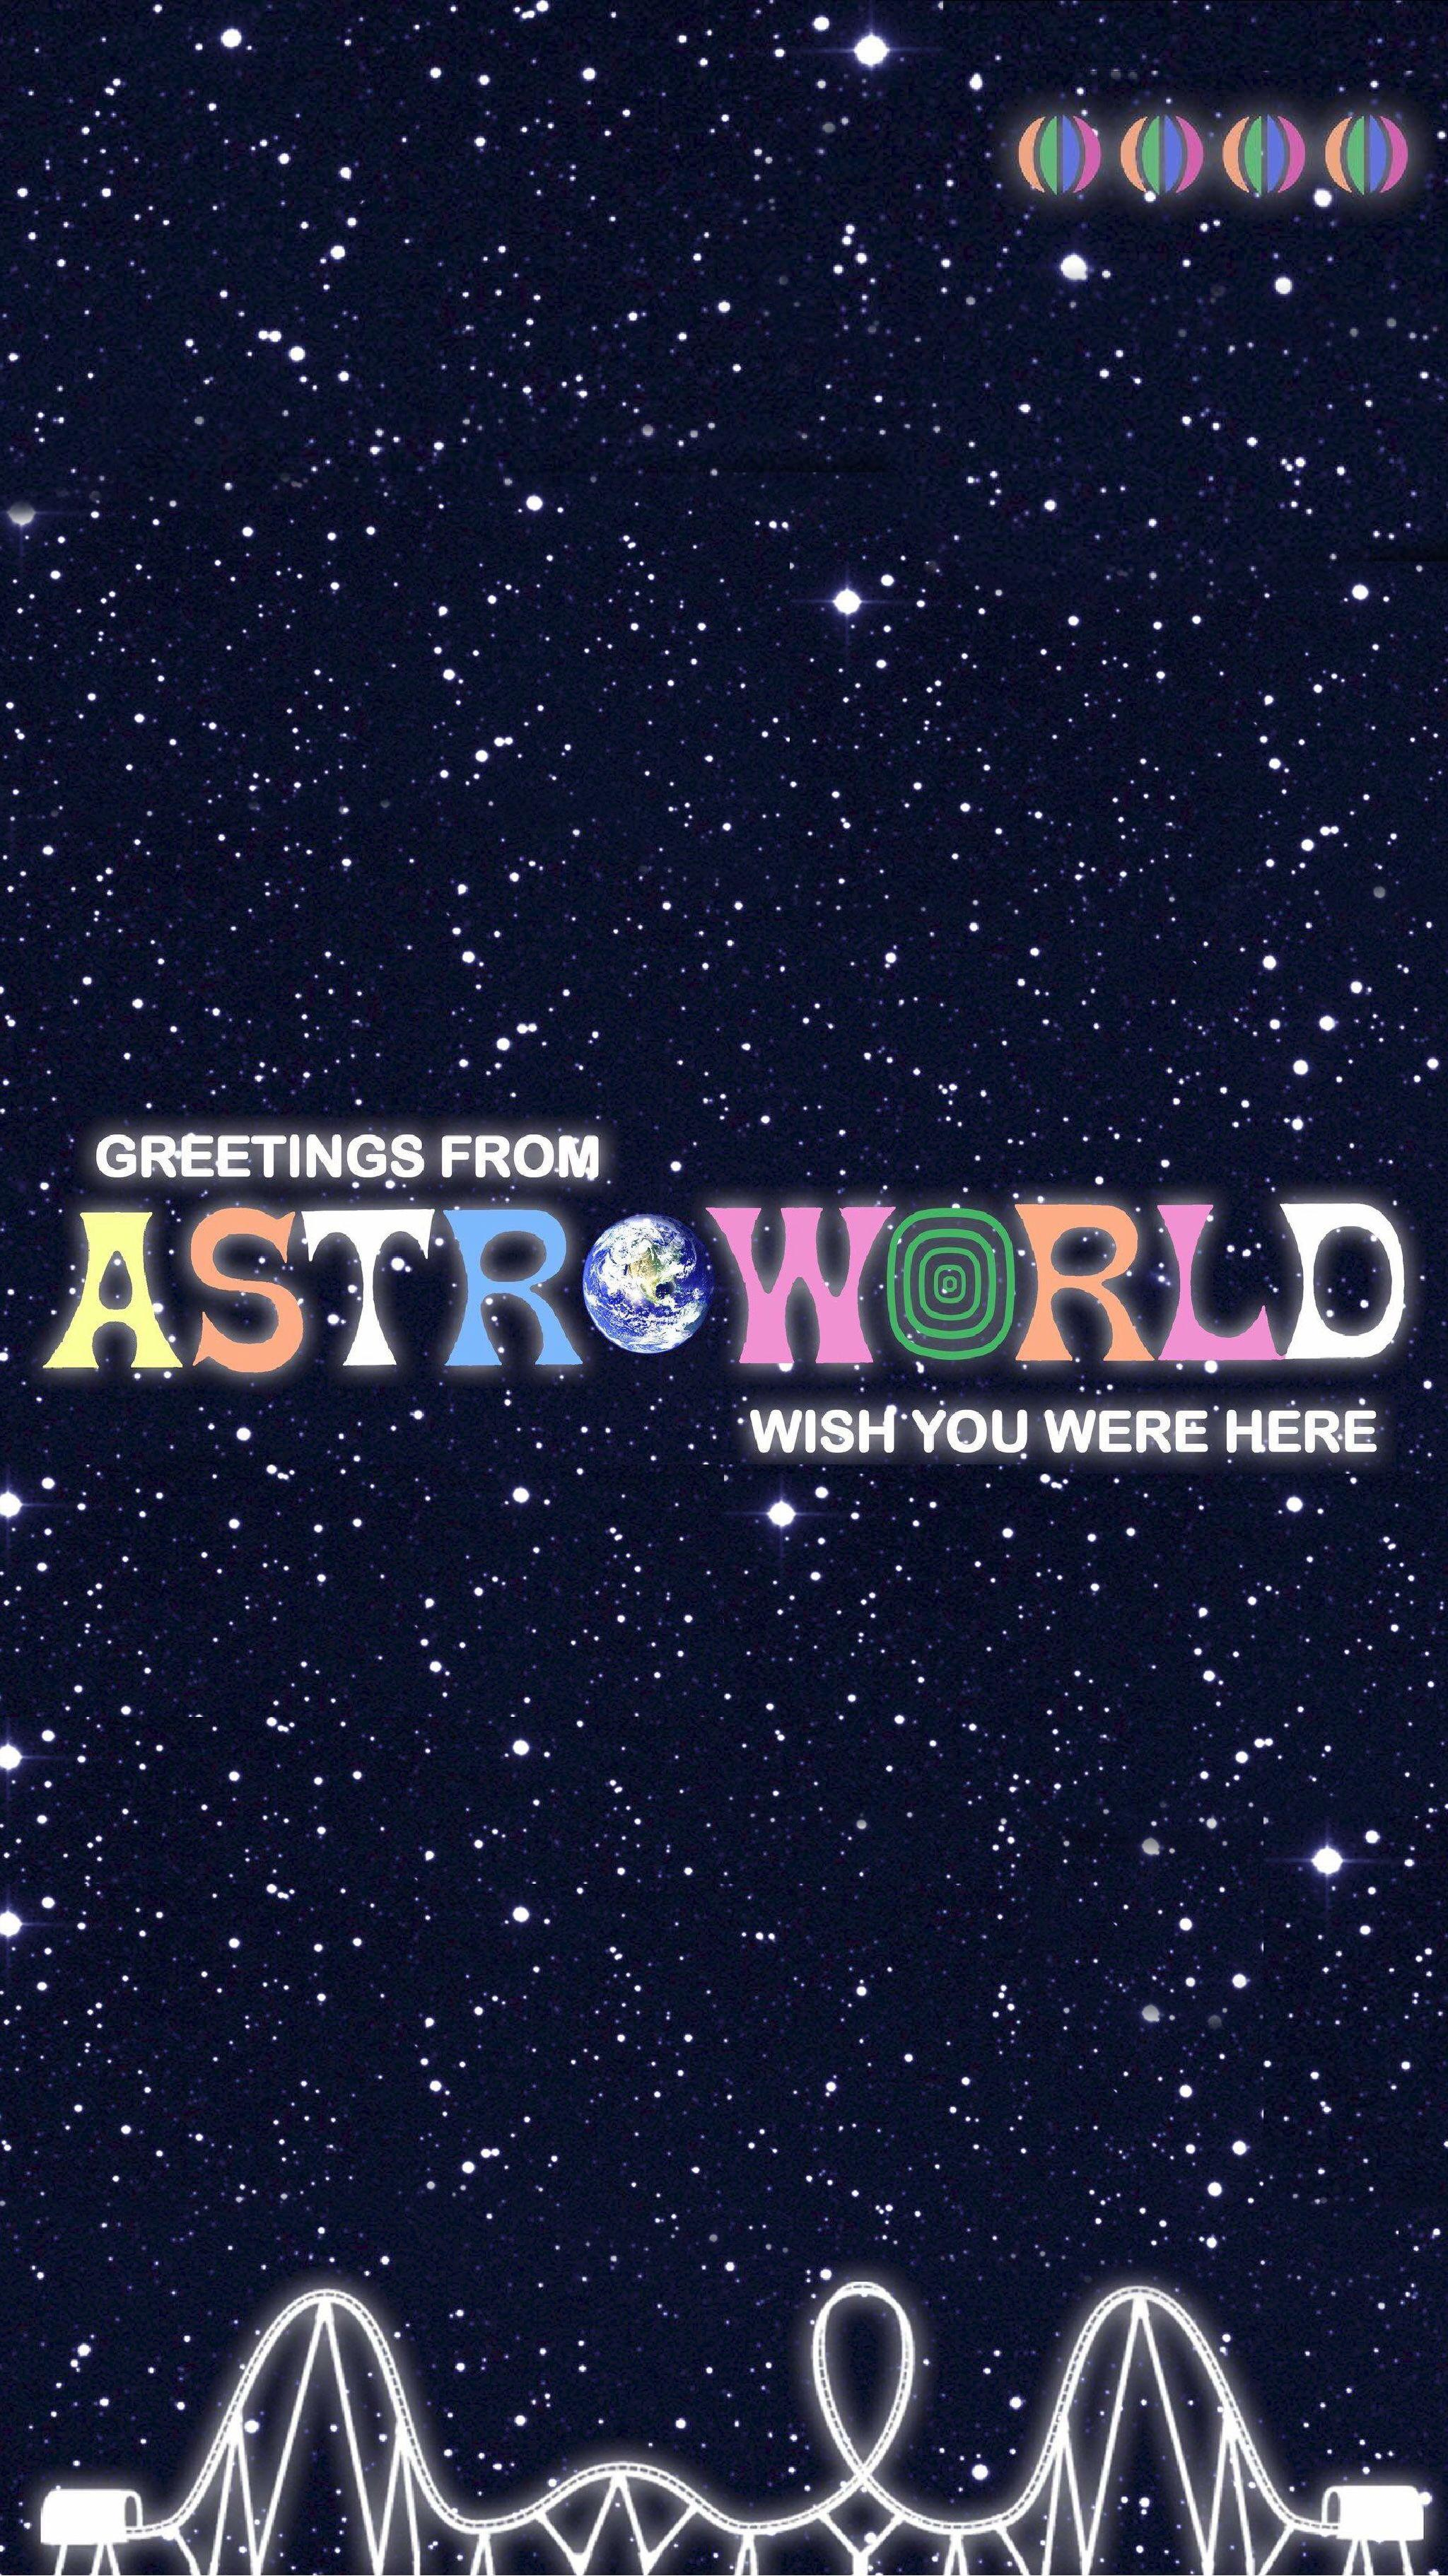 Astroworld Wallpapers Wallpaper Cave